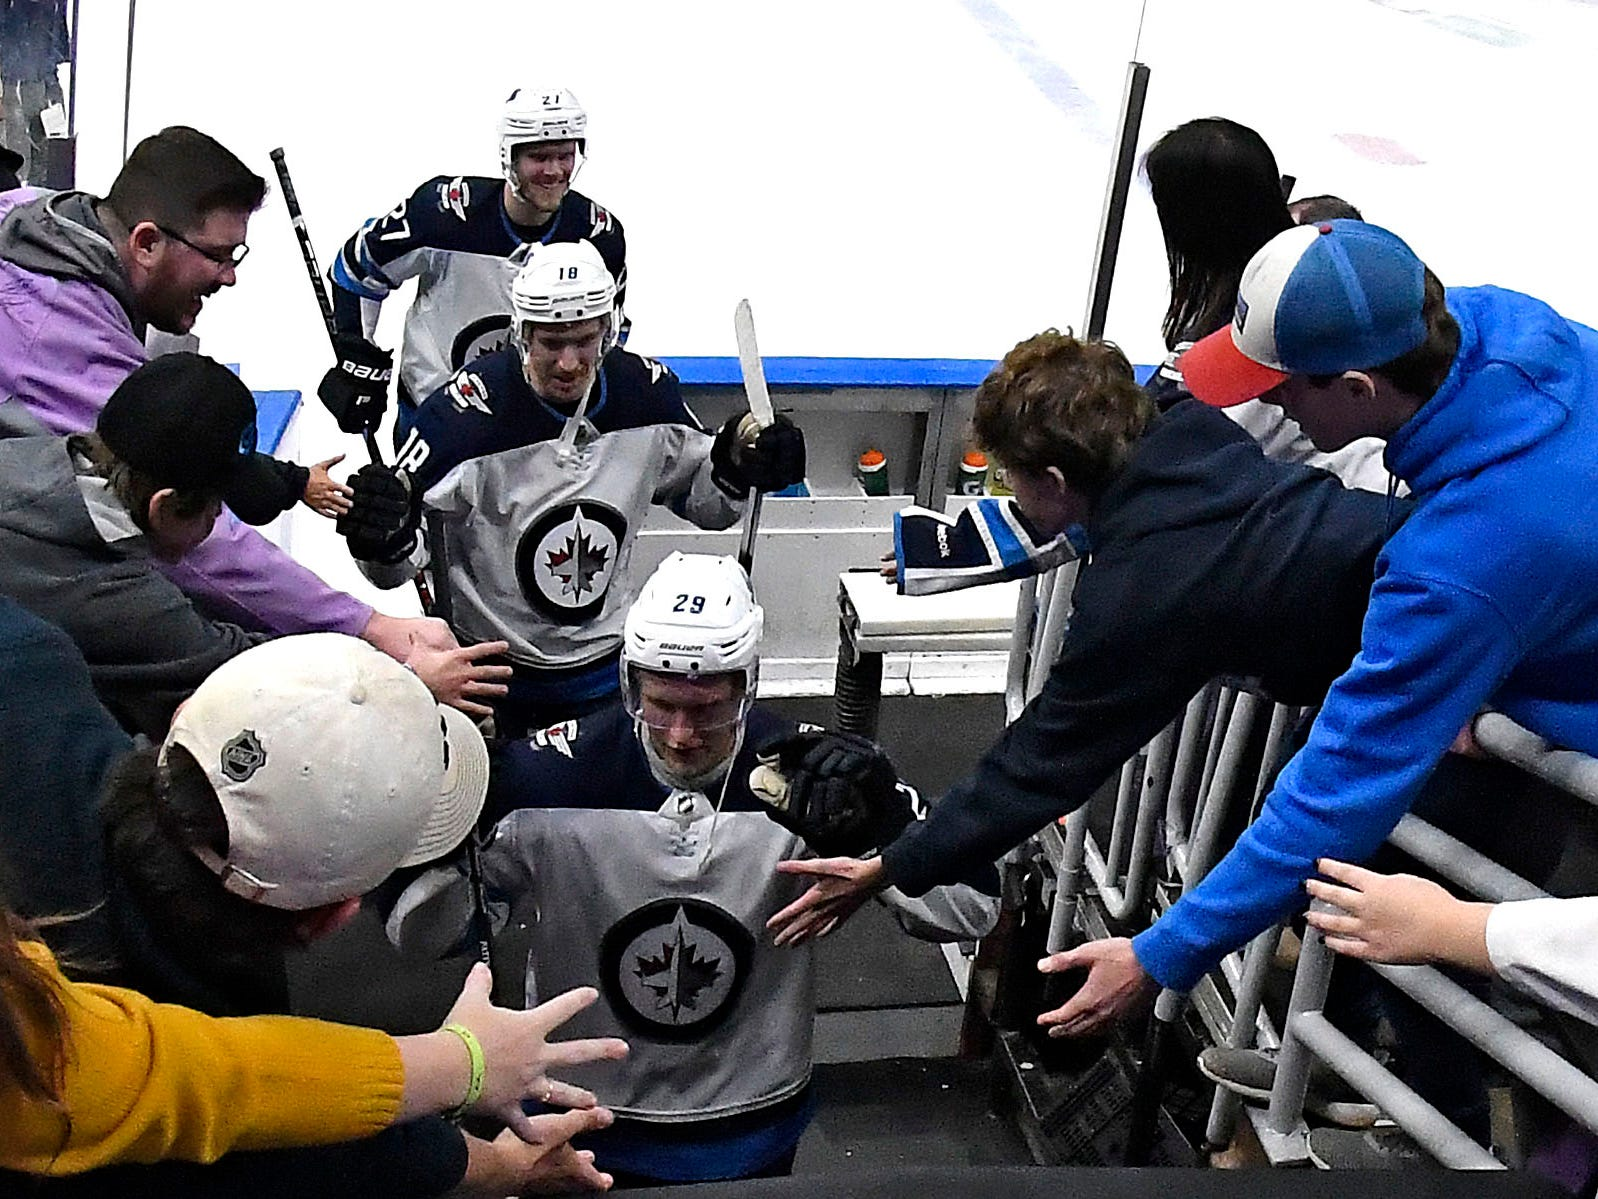 Nov. 24: Winnipeg Jets right wing Patrik Laine (29) is congratulated by fans after he scored five goals in an 8-4 win against the St. Louis Blues.